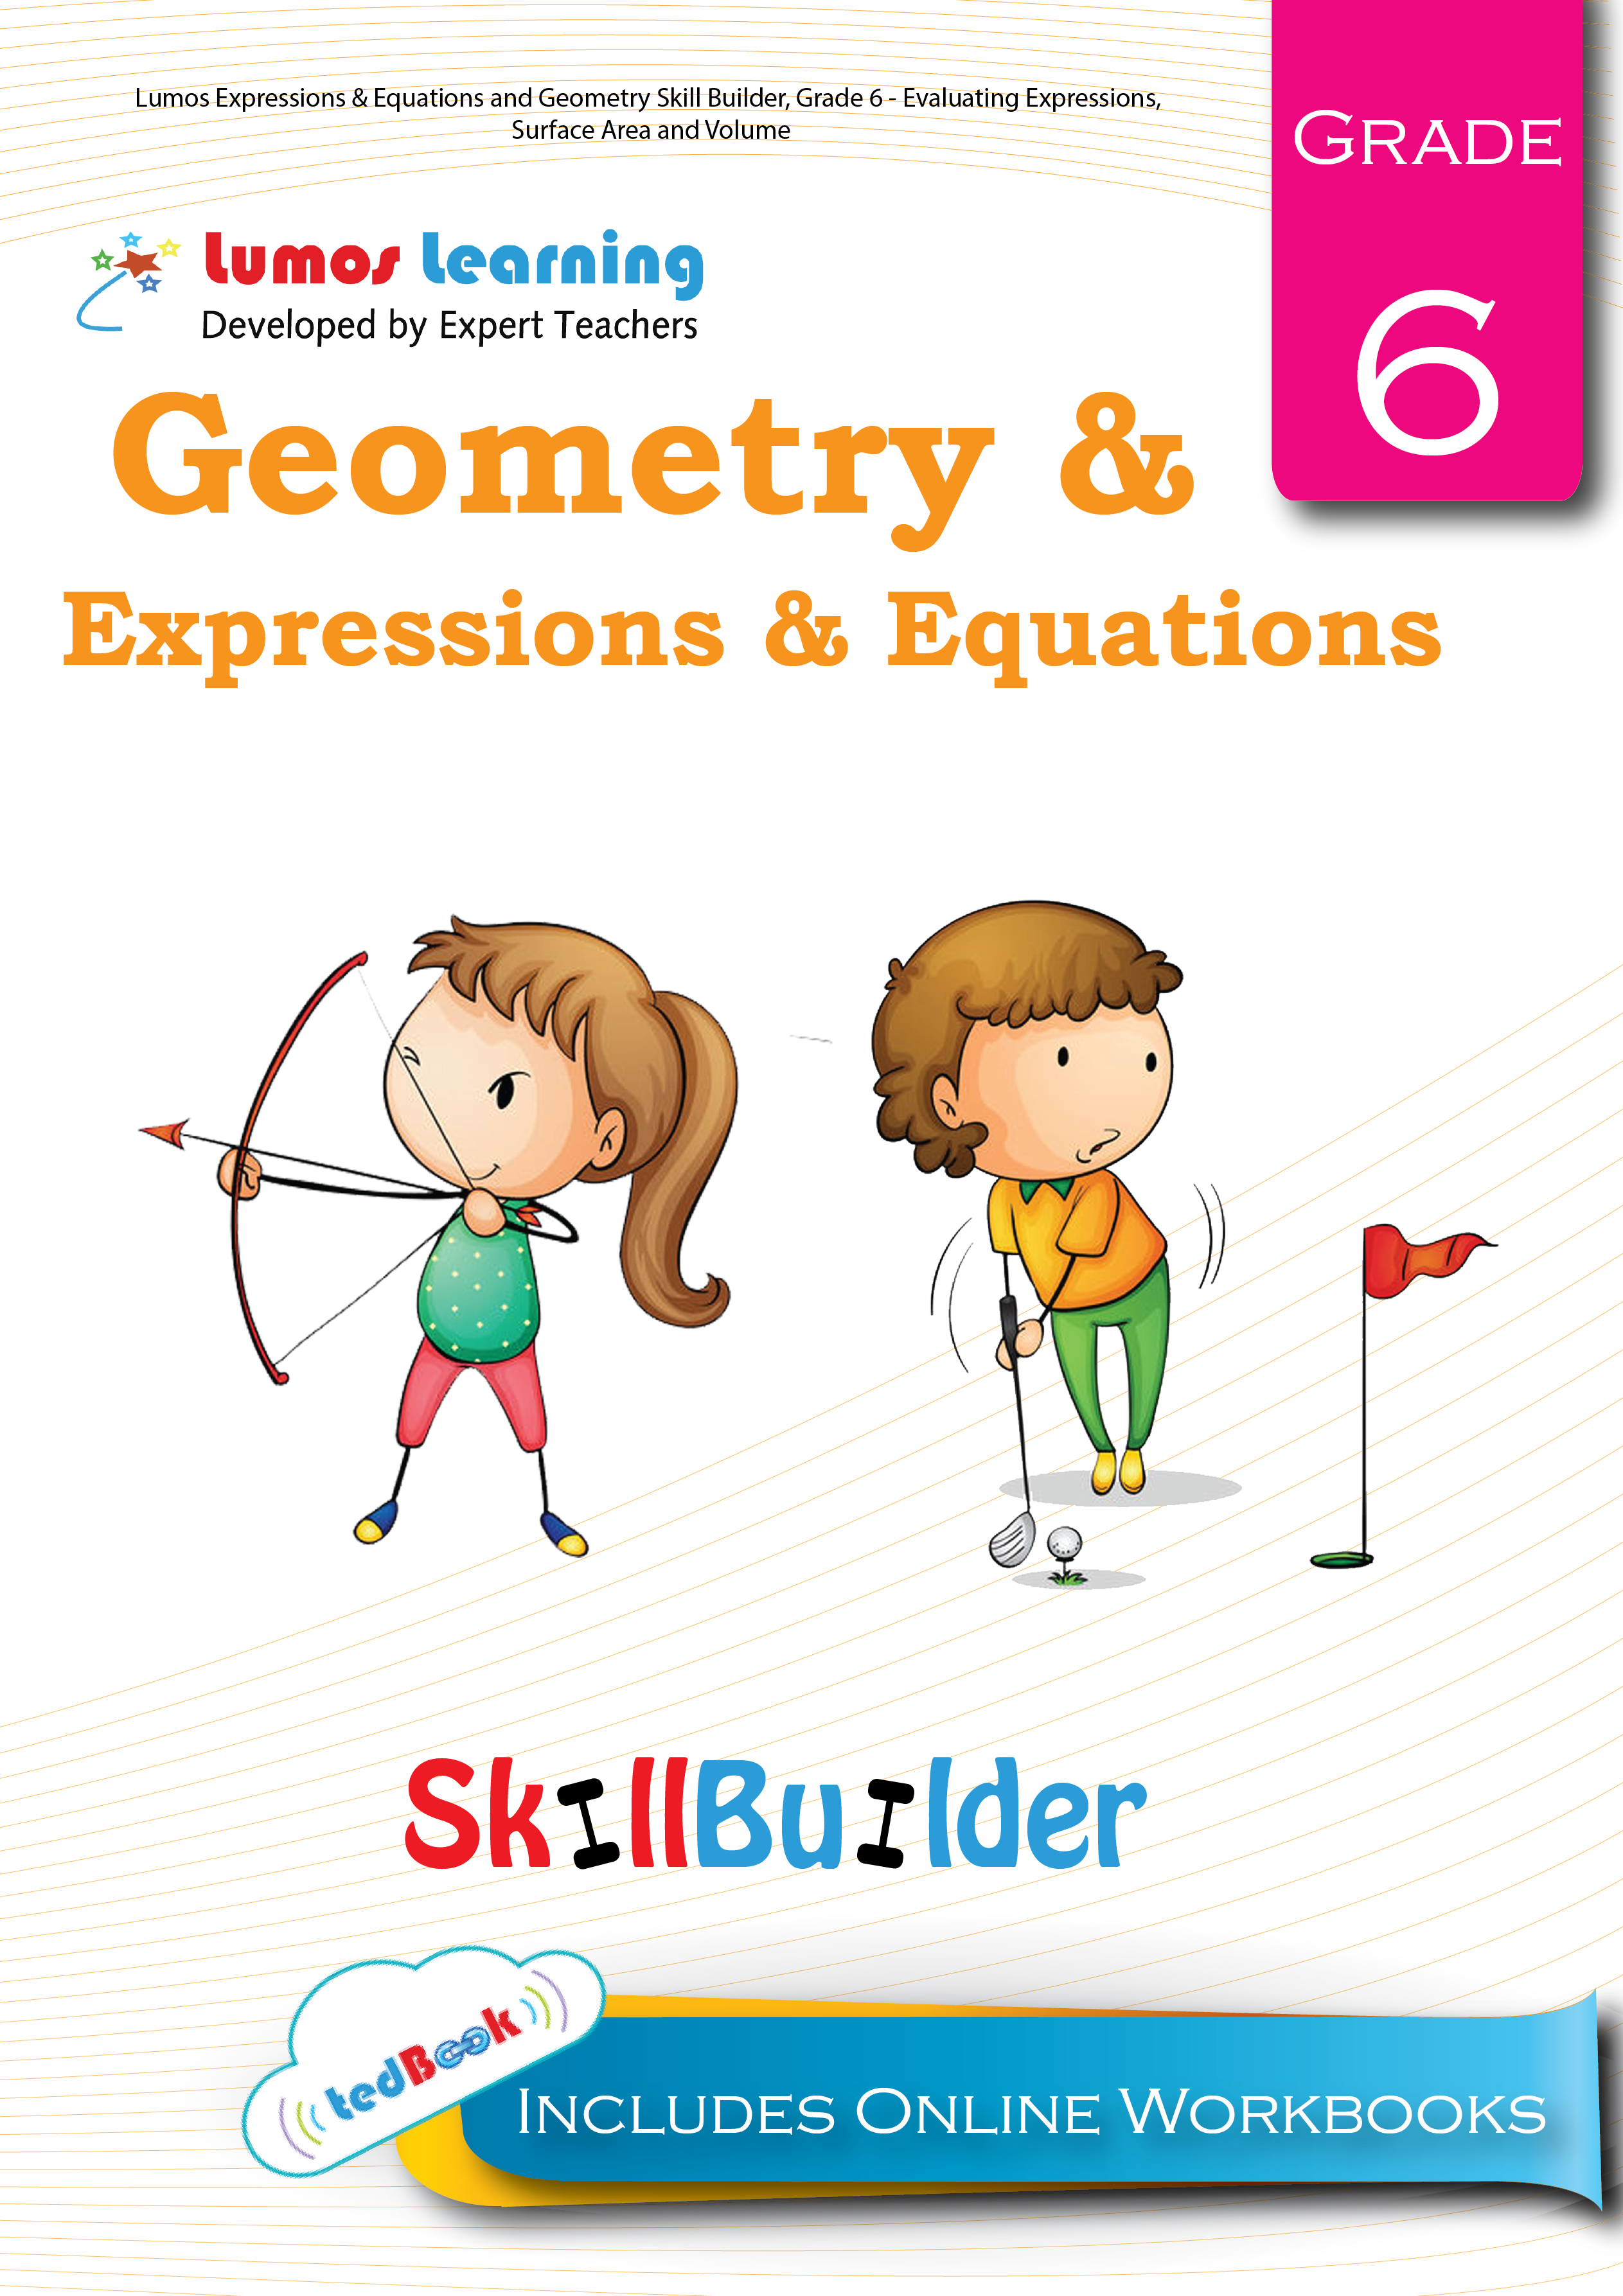 Geometry and Expressions and Equations grade 6